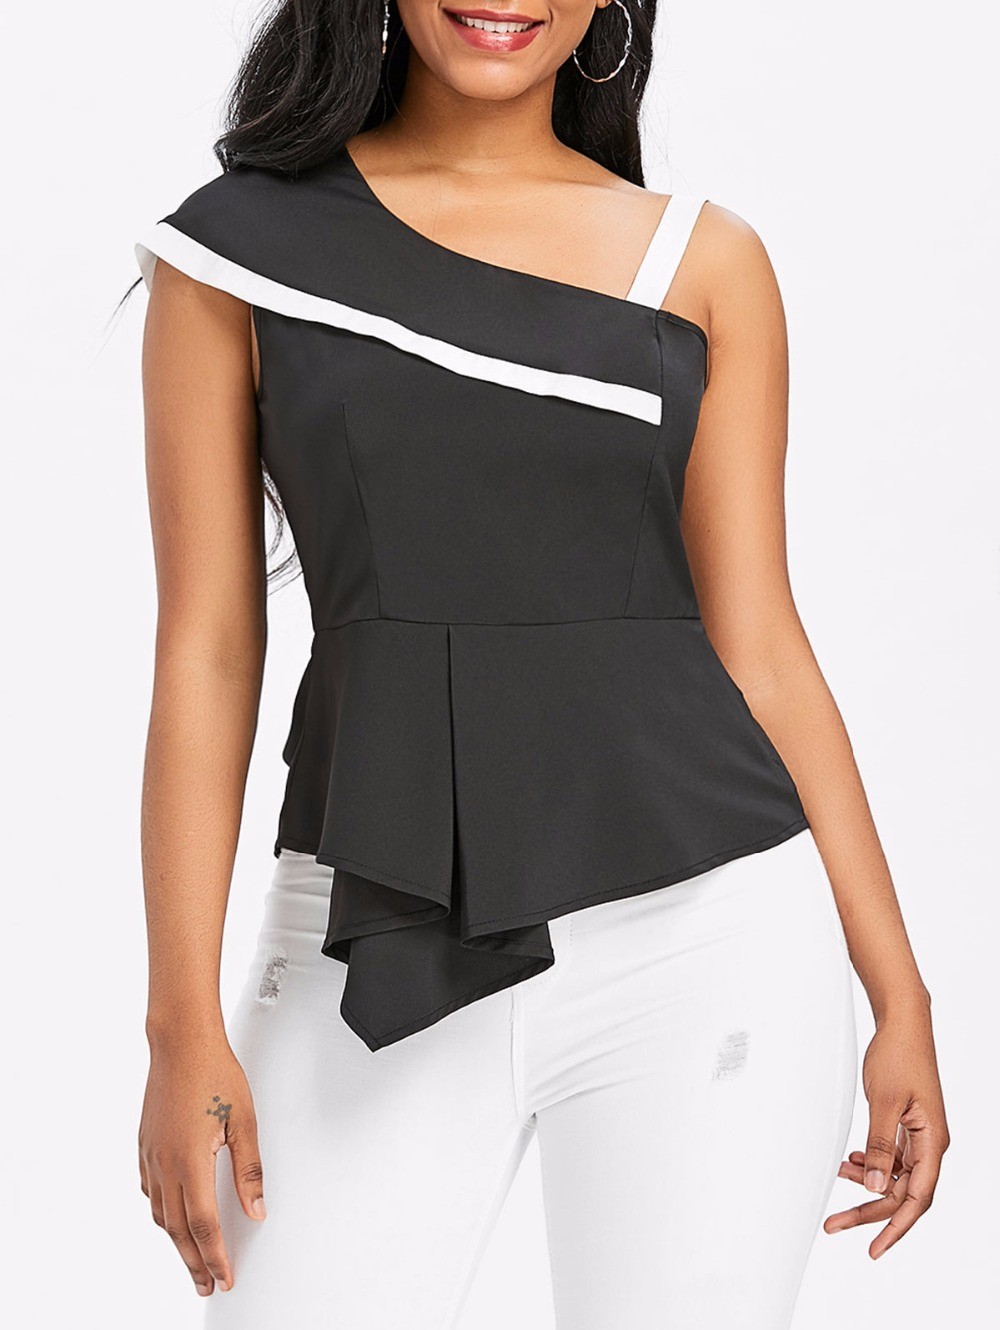 VESTLINDA One Shoulder Skew Neck Peplum Asymmetrical Black Blouse Womens Tops and Blouses Summer Top 2018 Clothes Blouse Shirt 5